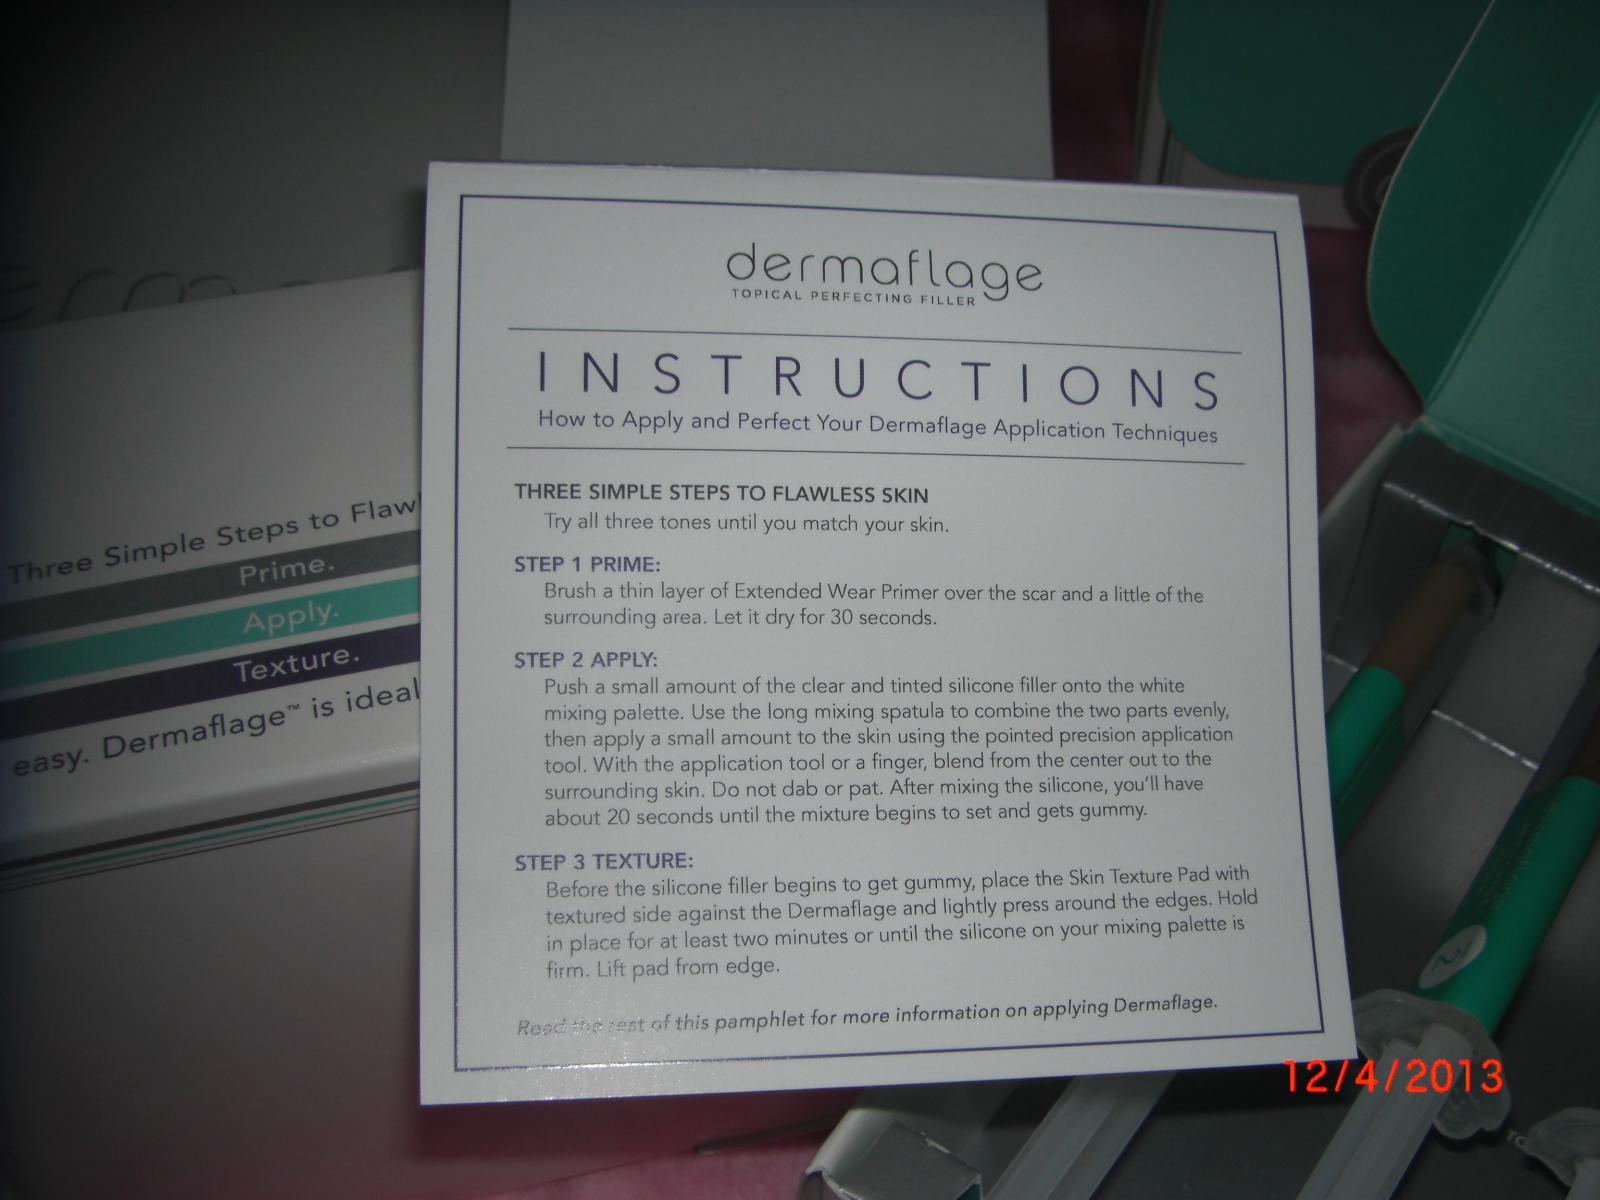 derma roller instructions video